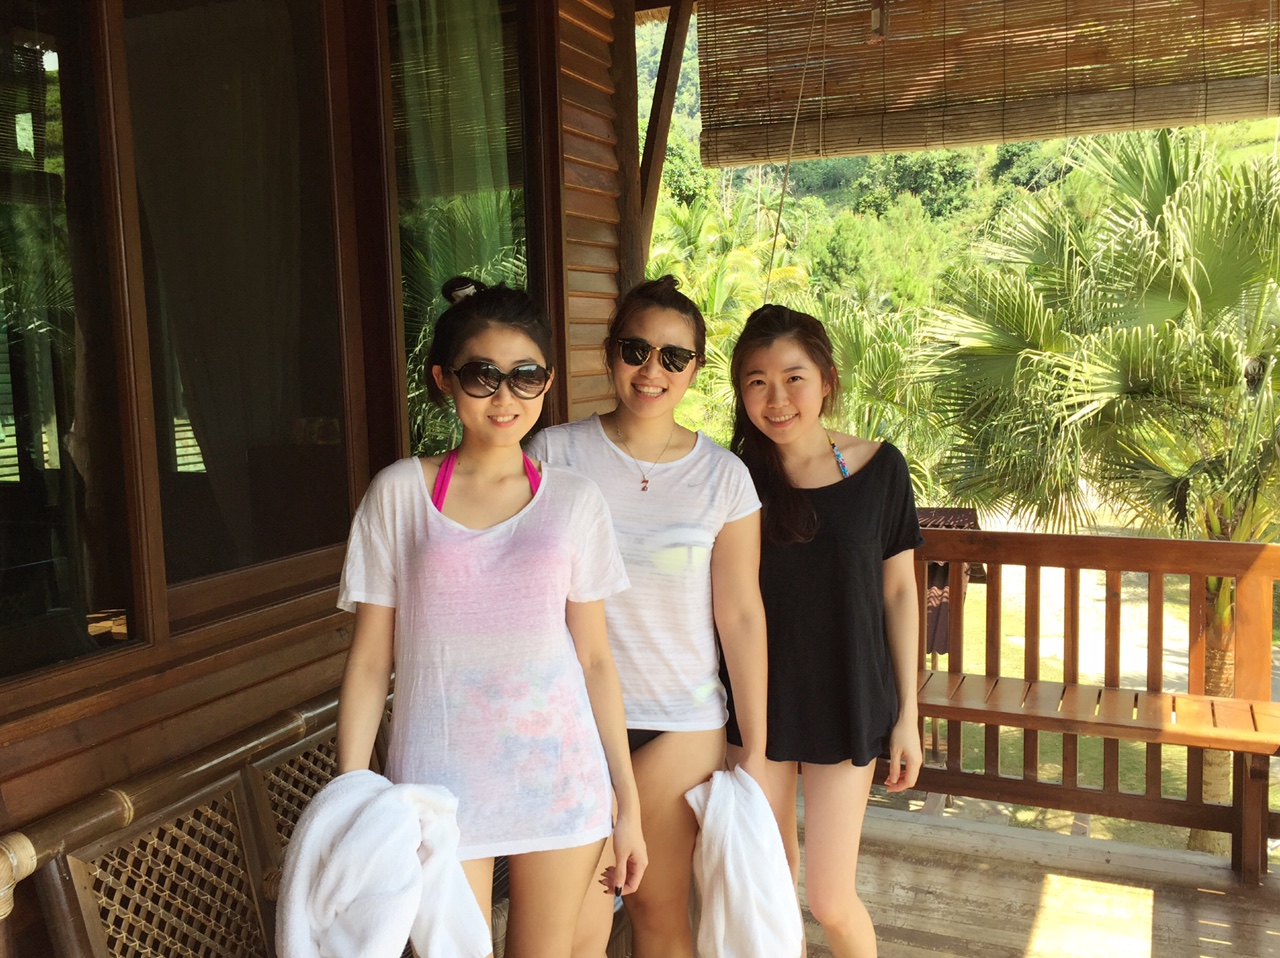 bentong girls Mandarin betong in betong provides accommodations with an outdoor swimming pool and massage services this 4-star hotel offers a garden.